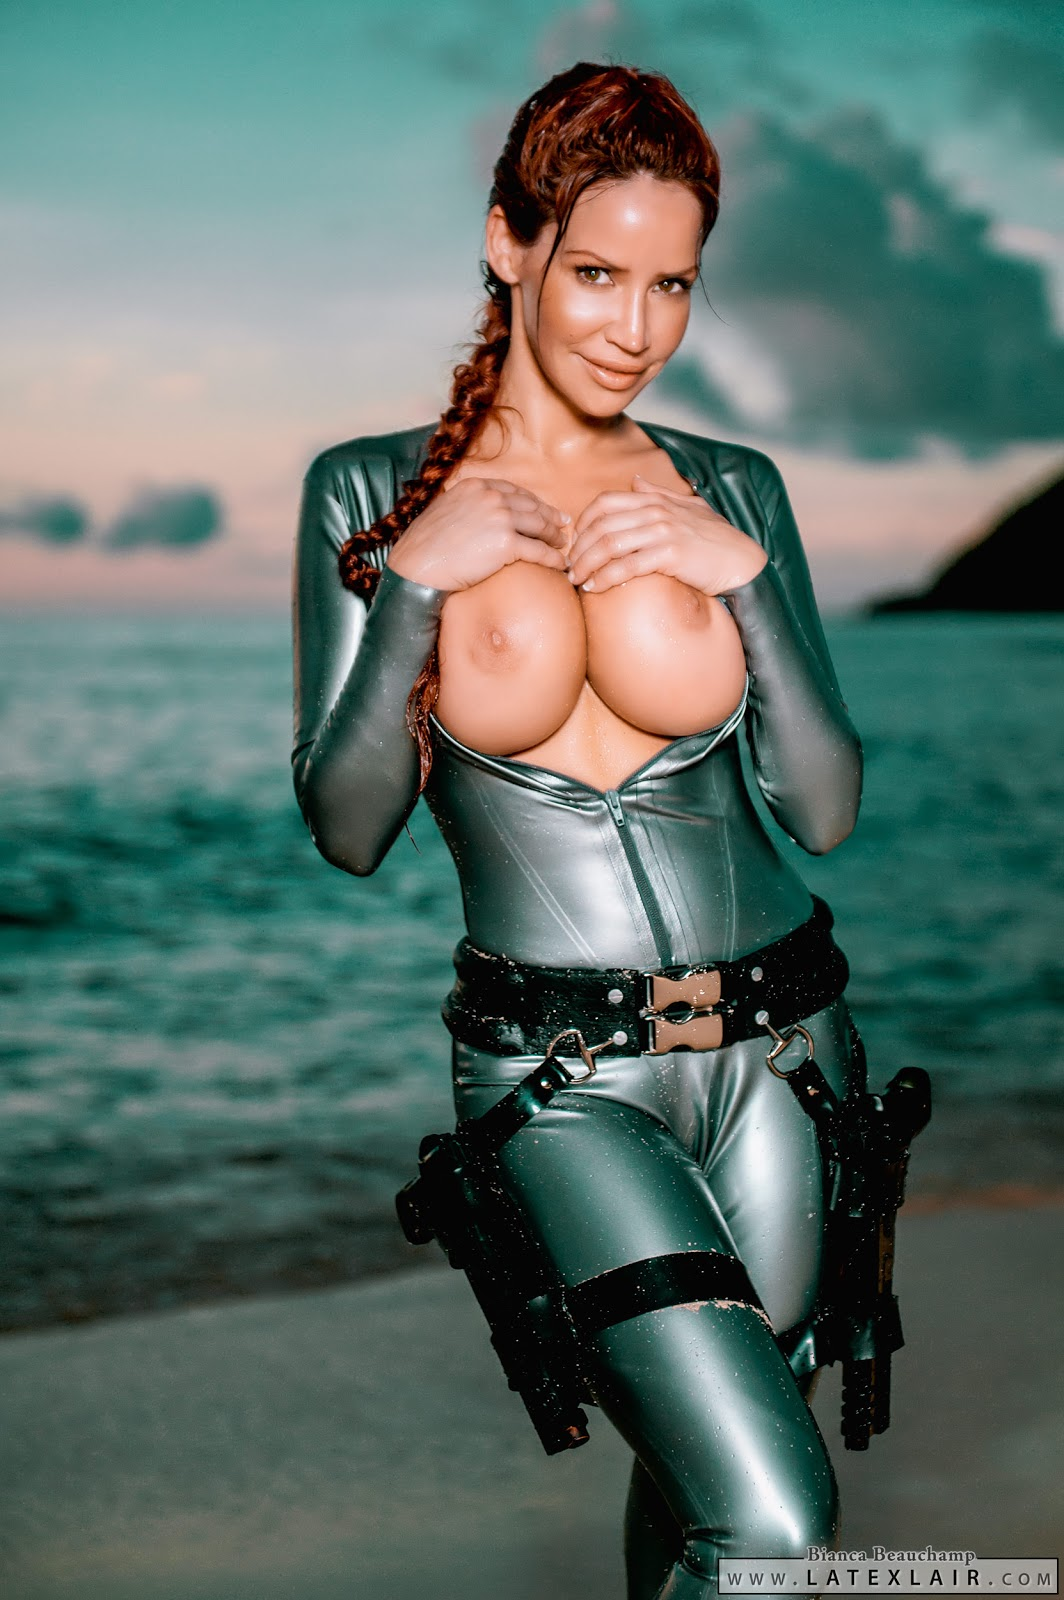 Lara croft naked good quality hentai pictures